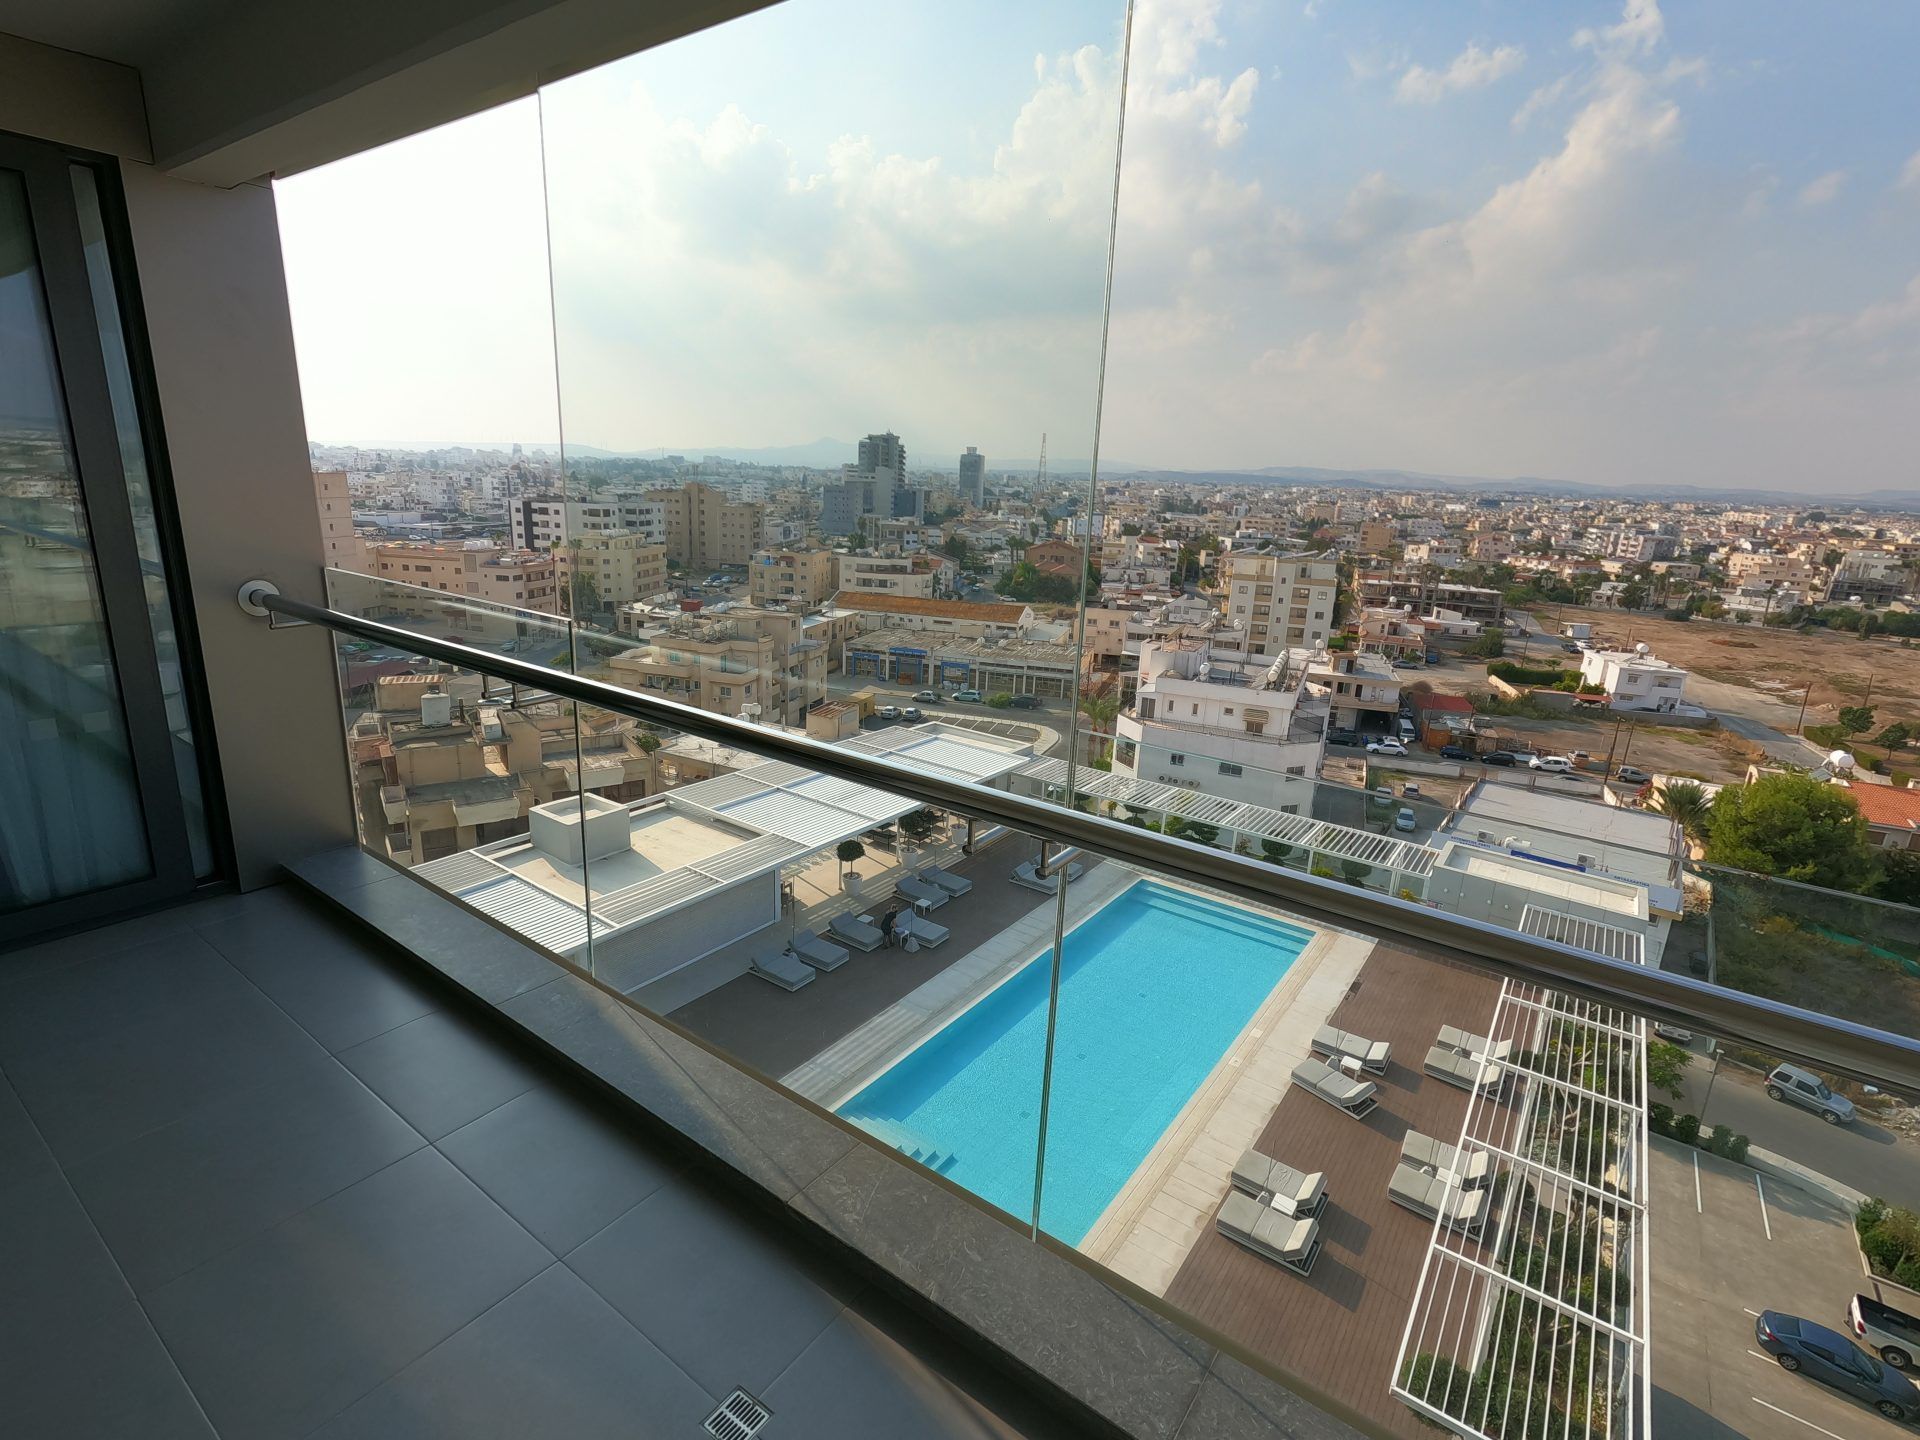 View to the pool and the city